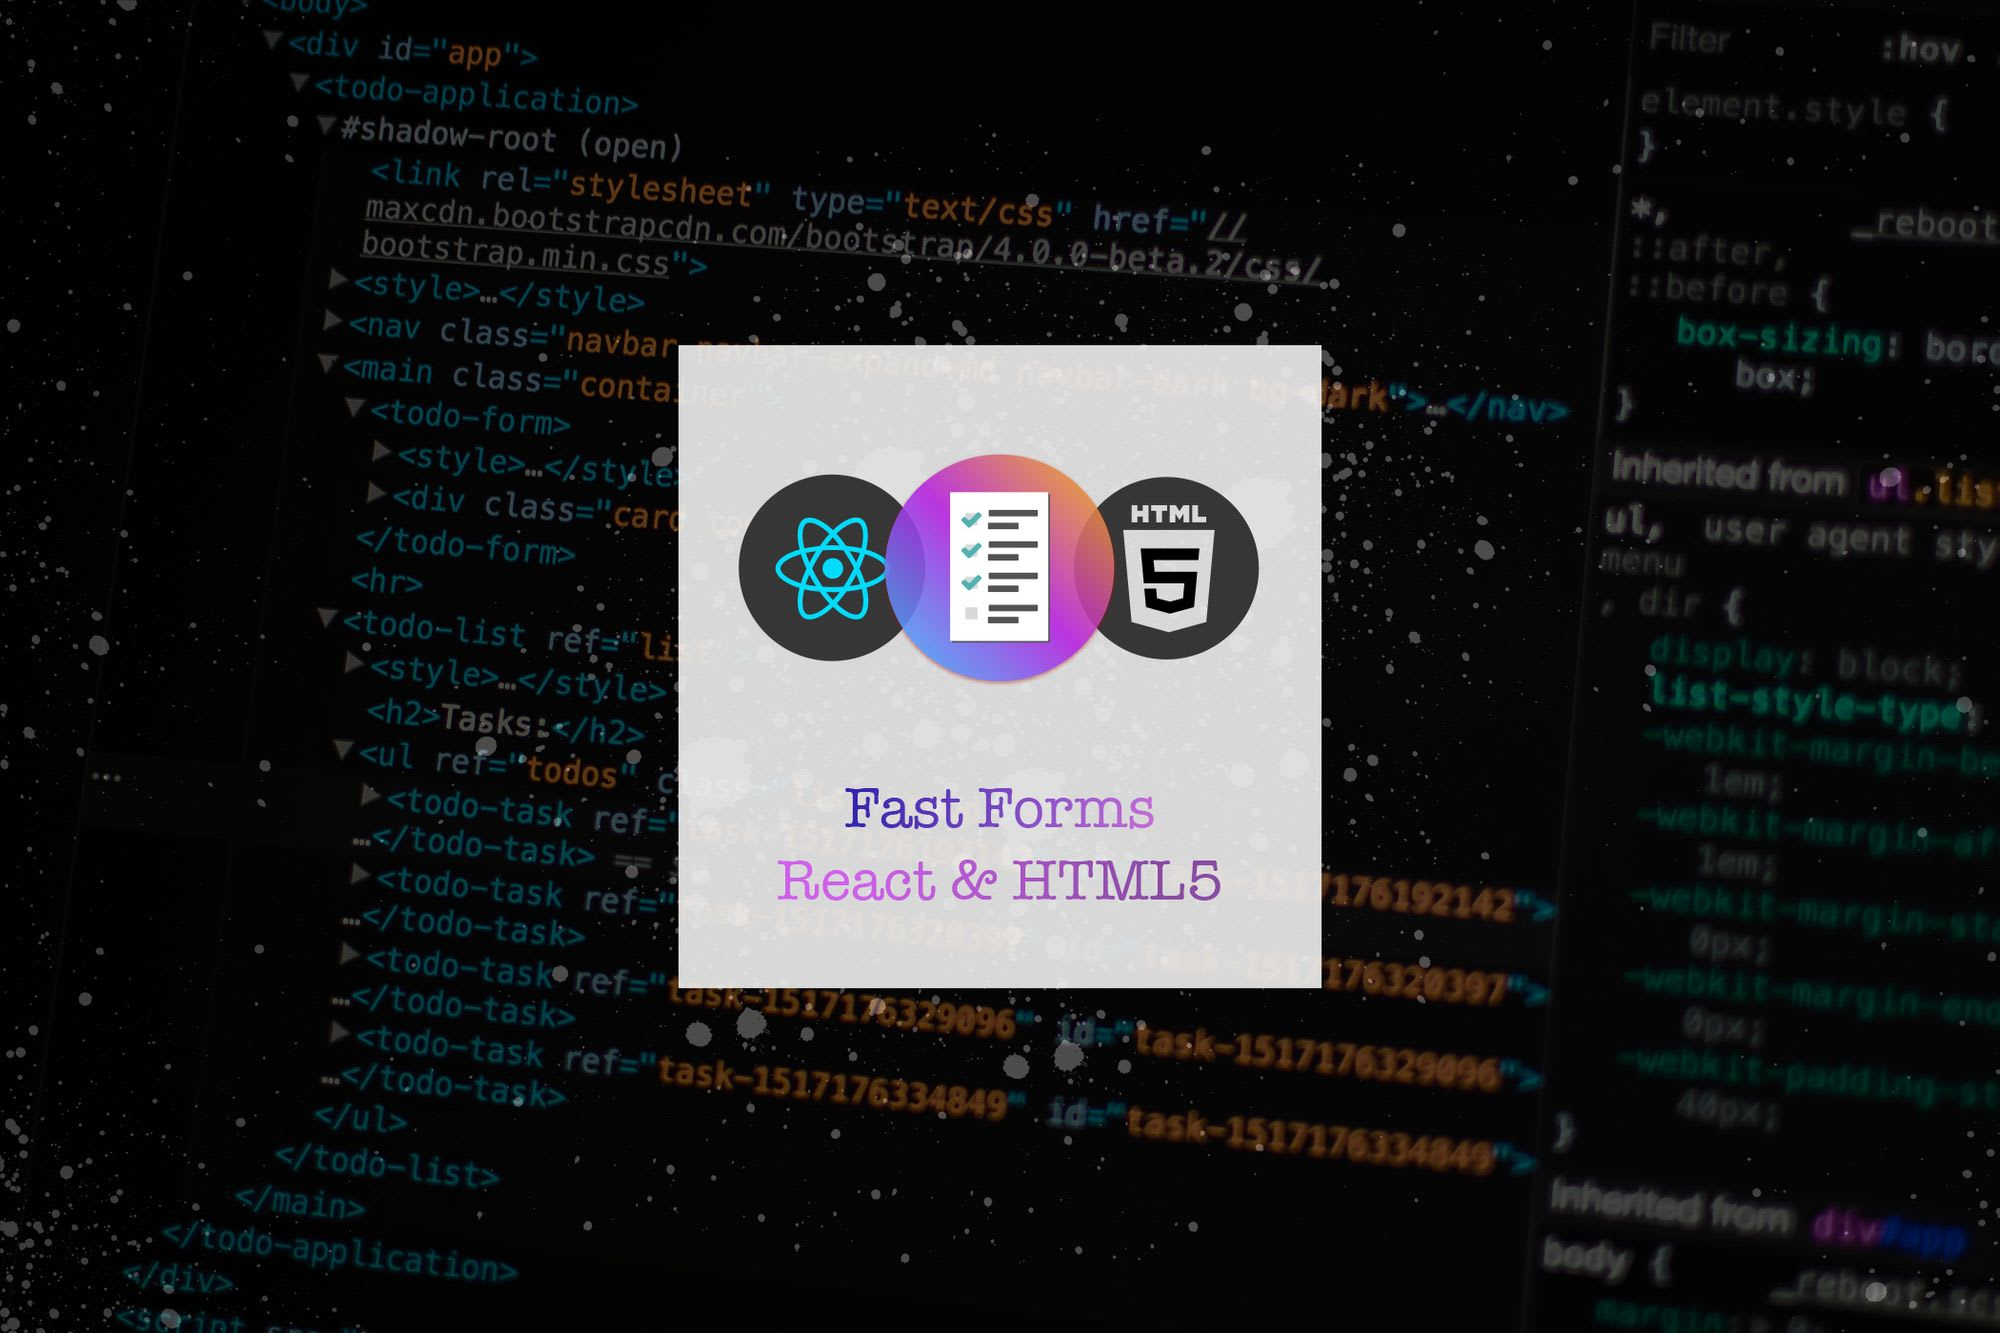 Building Fast Forms in React with HTML5 & Validations